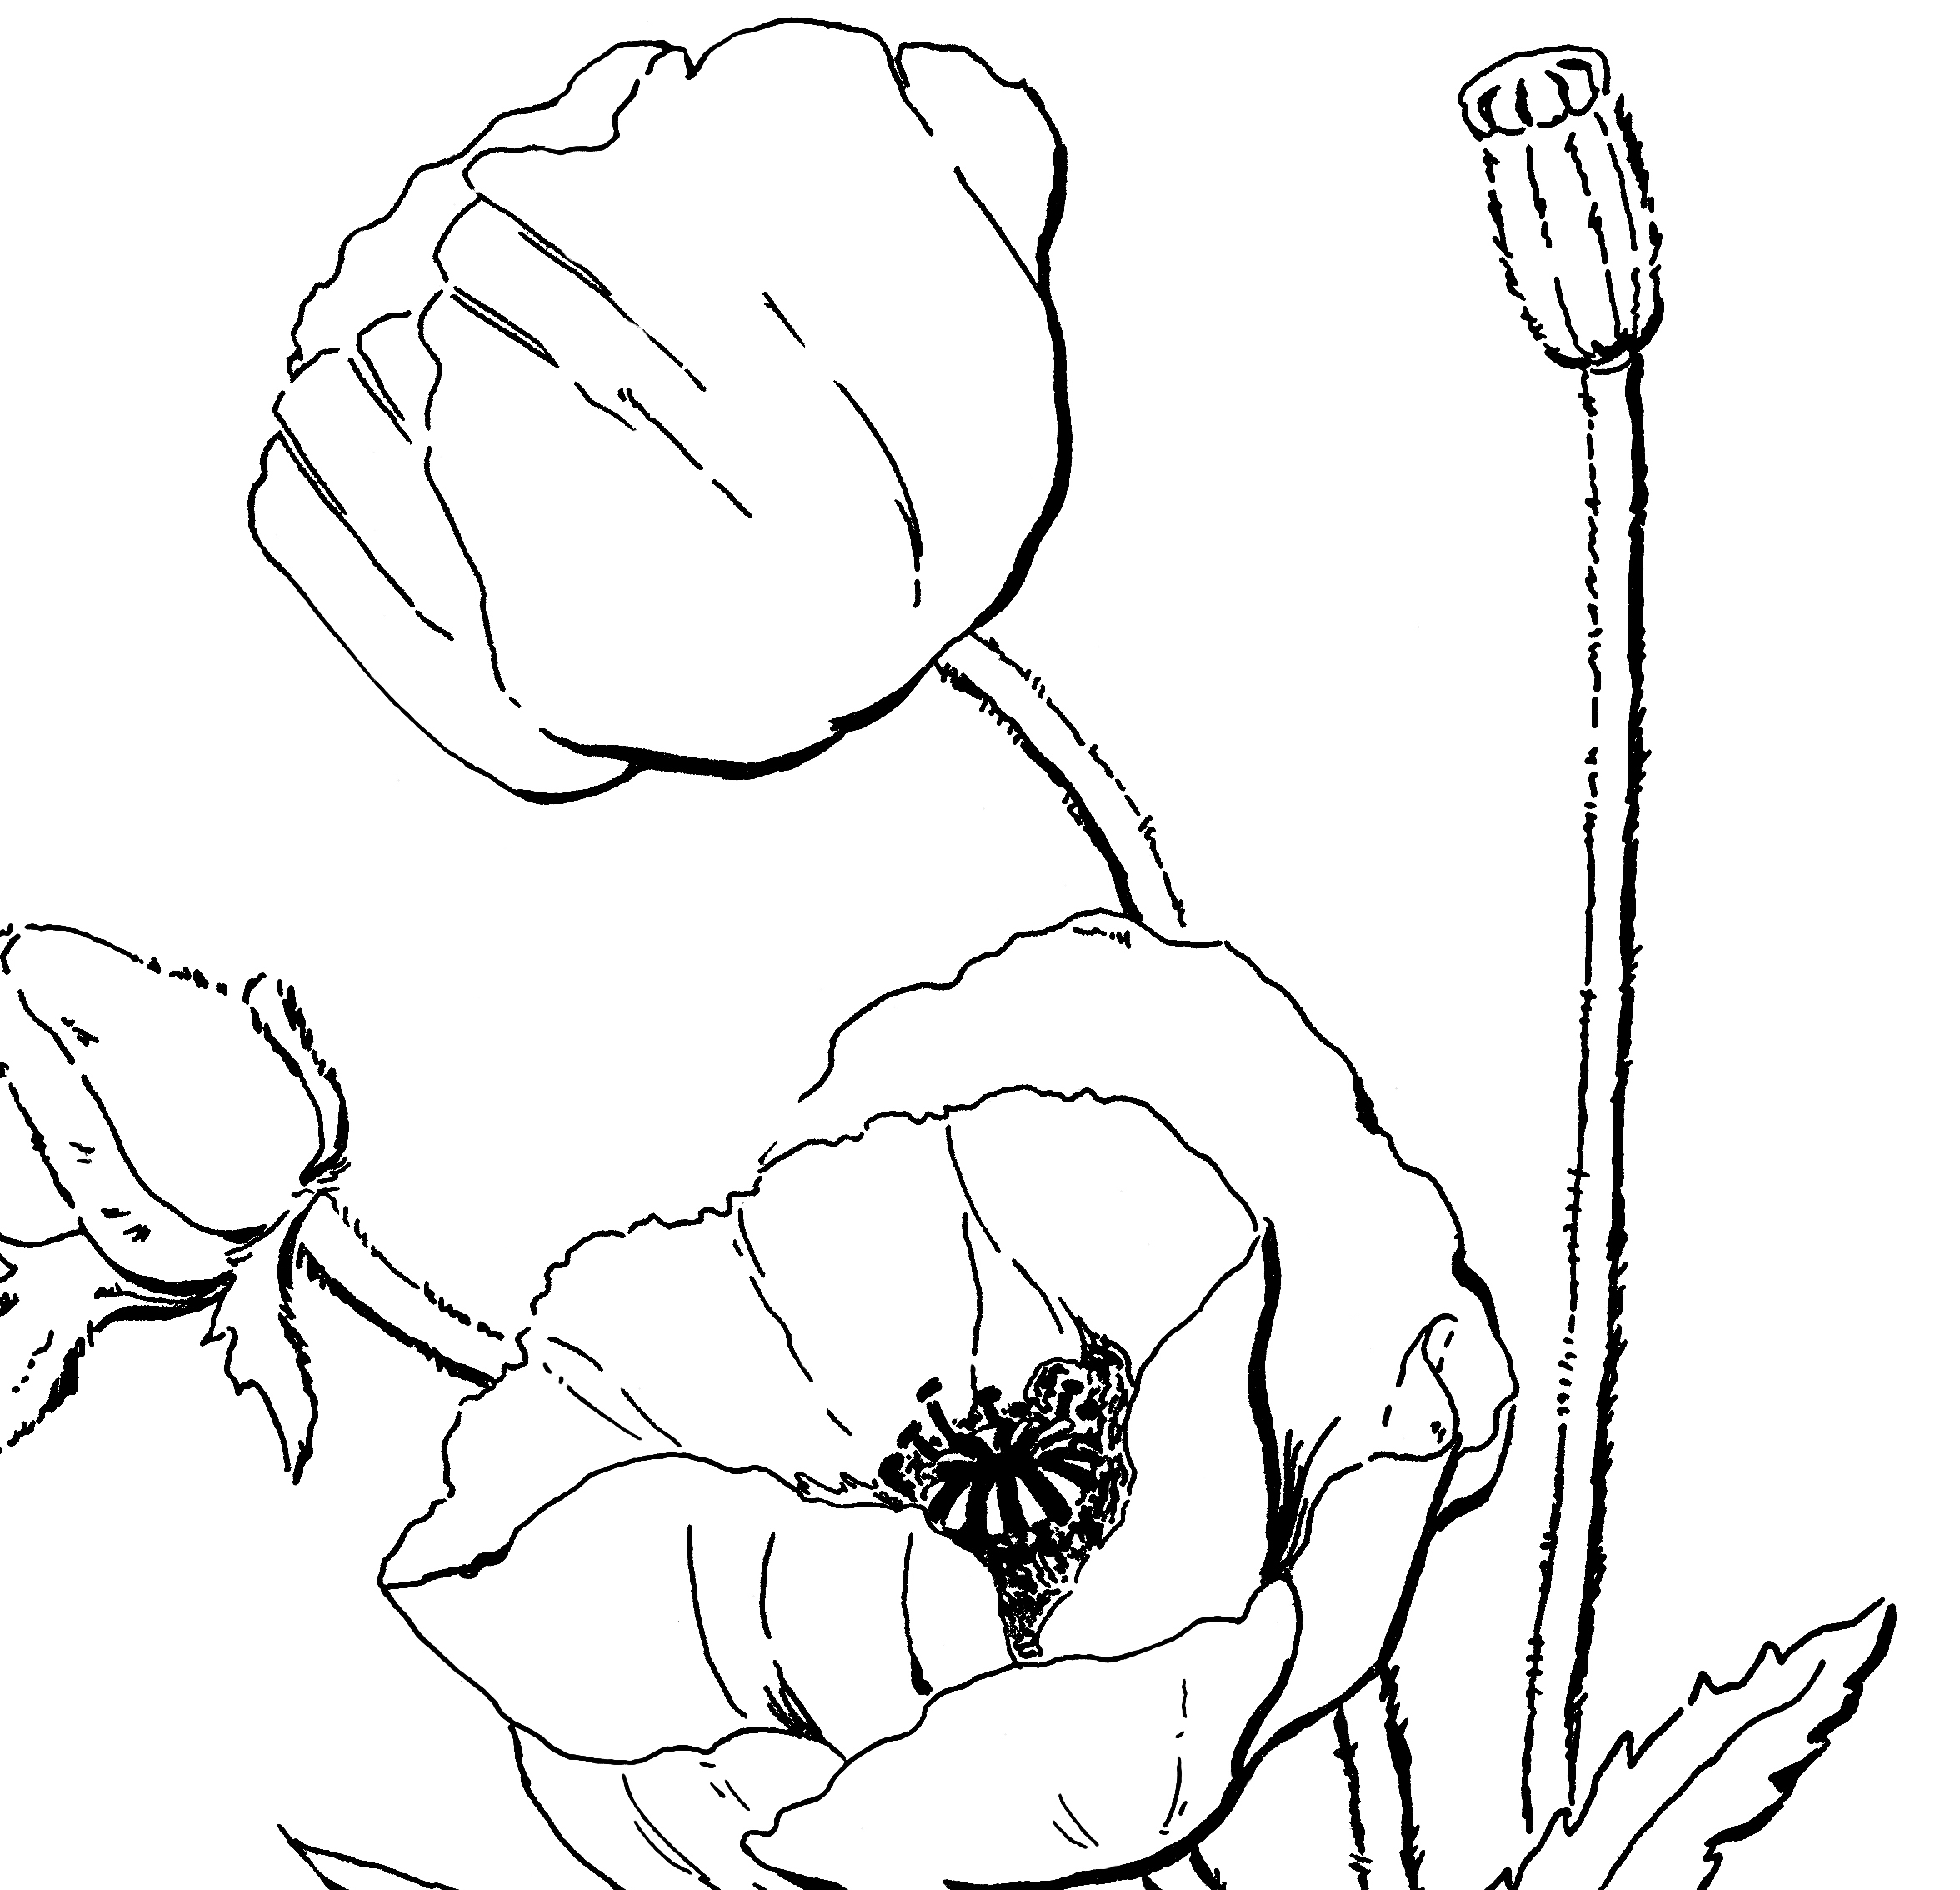 2352x2268 Poppy Coloring Page For Adults!